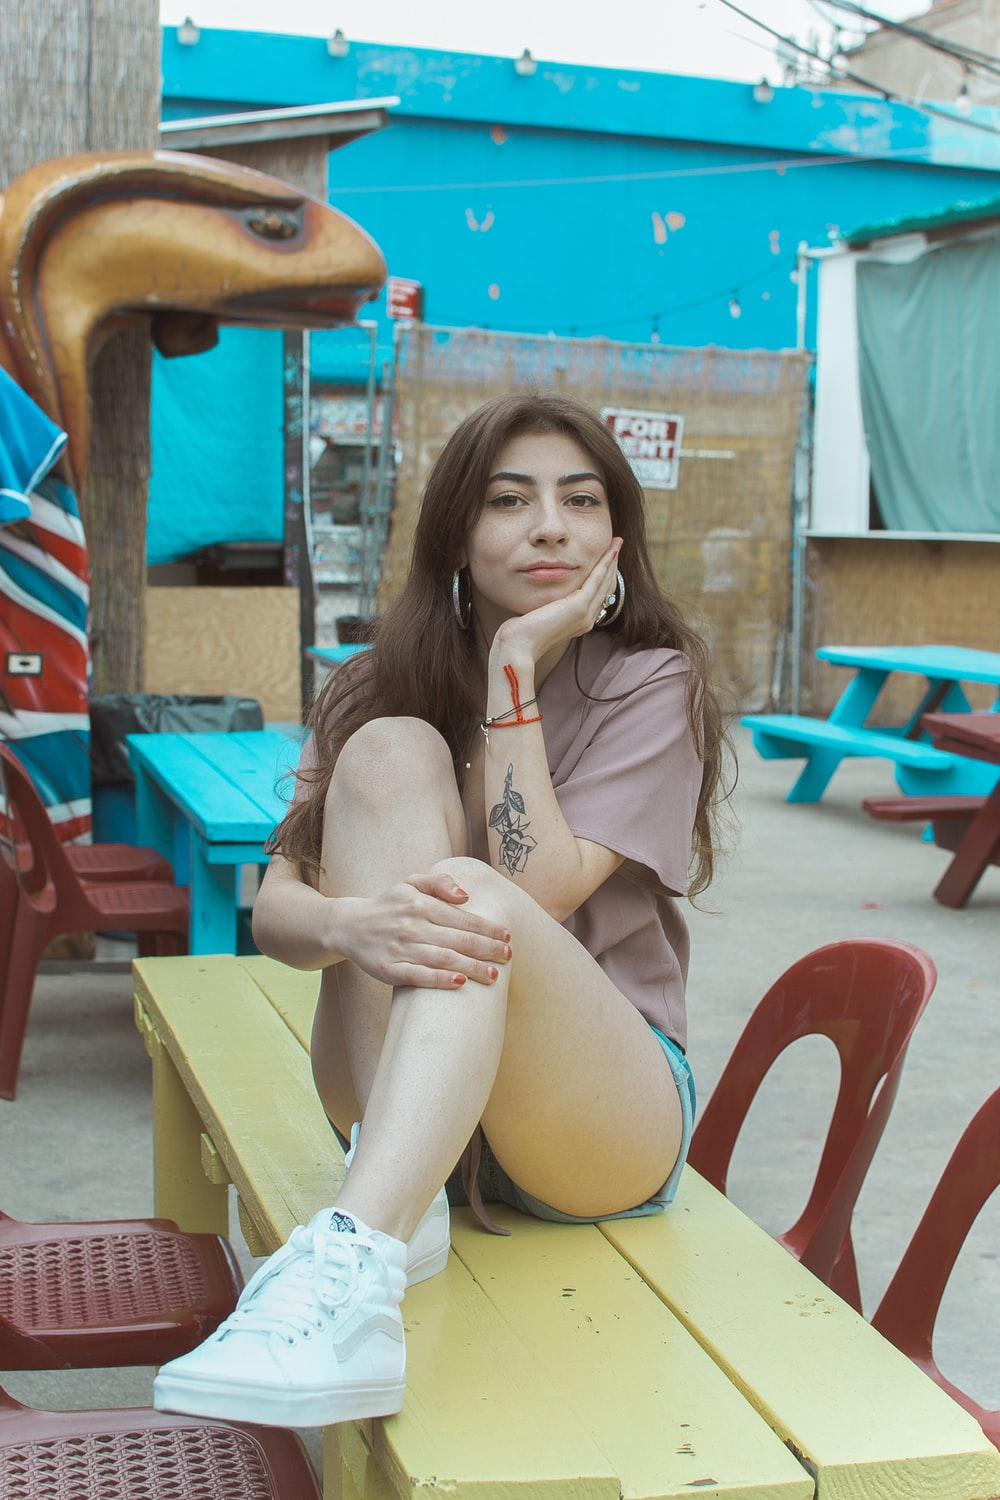 woman wearing beige screw-neck shirt and blue short sitting on yellow wooden bench